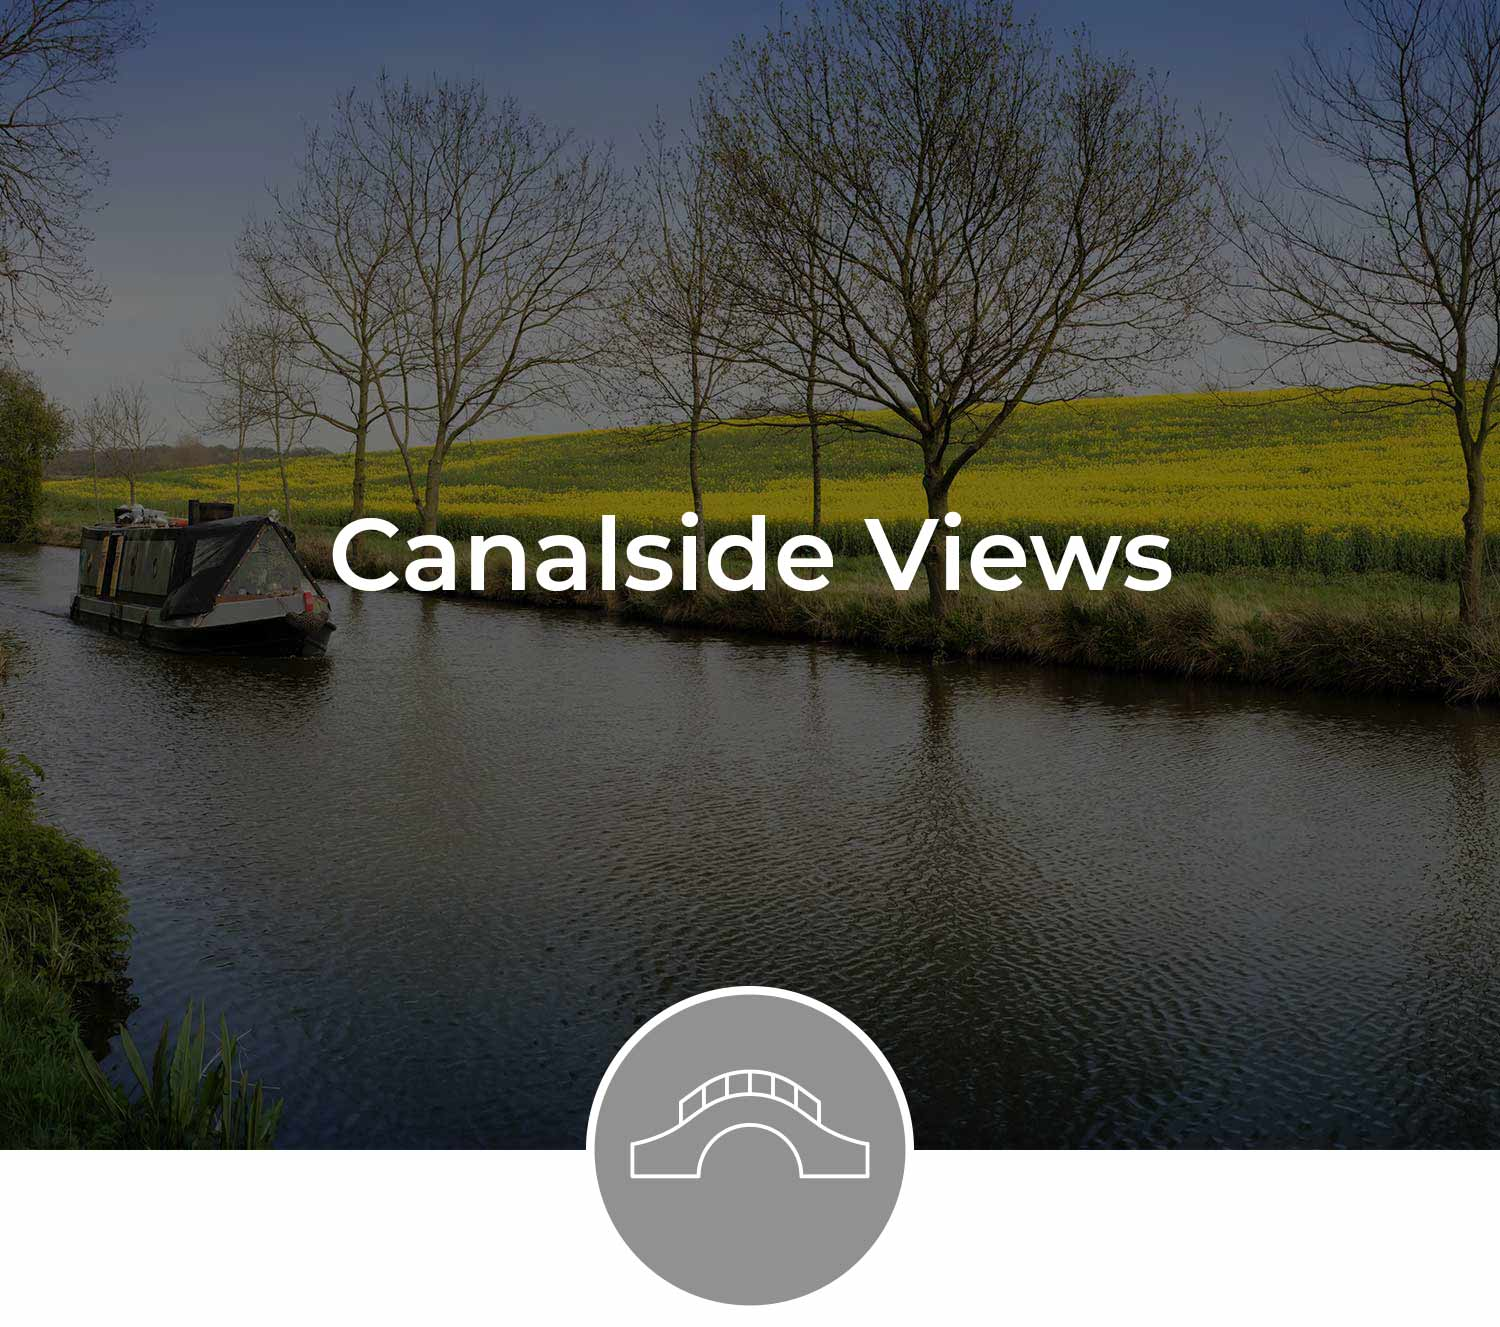 Lodges-with-Canalside-Views-at-Winston-Farm-icon